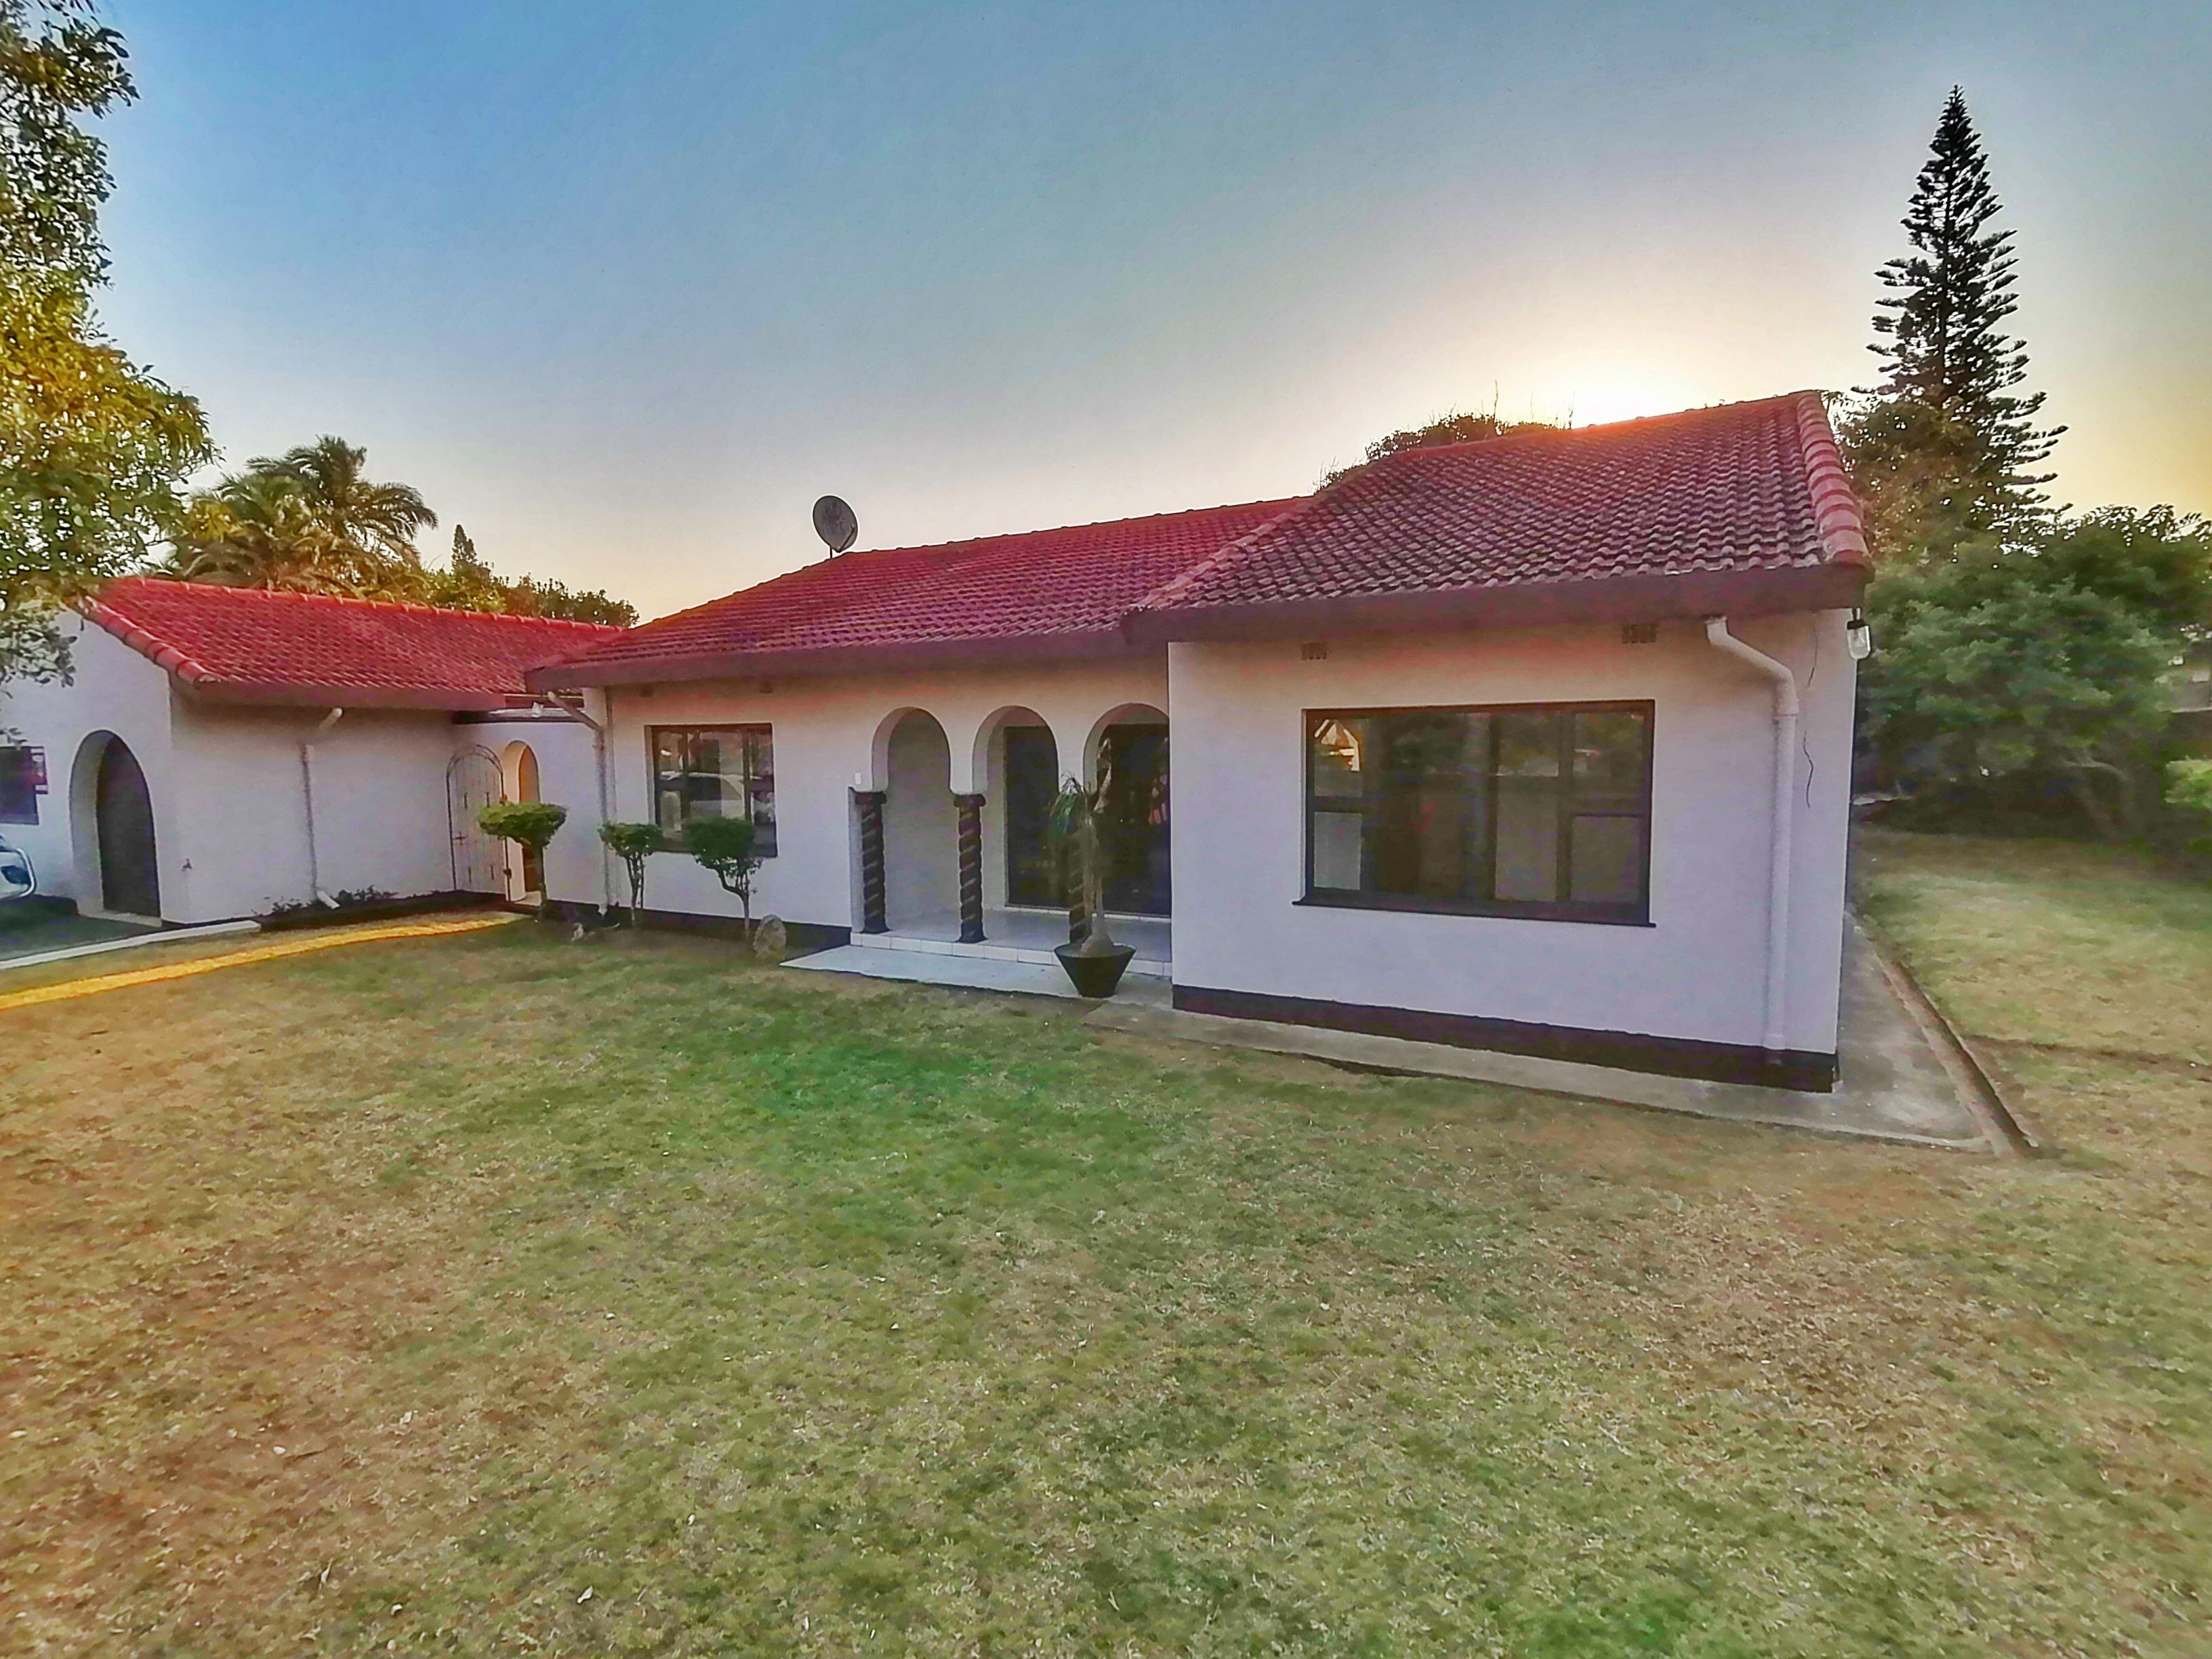 4 Bedroom House For Sale in Shelly Beach